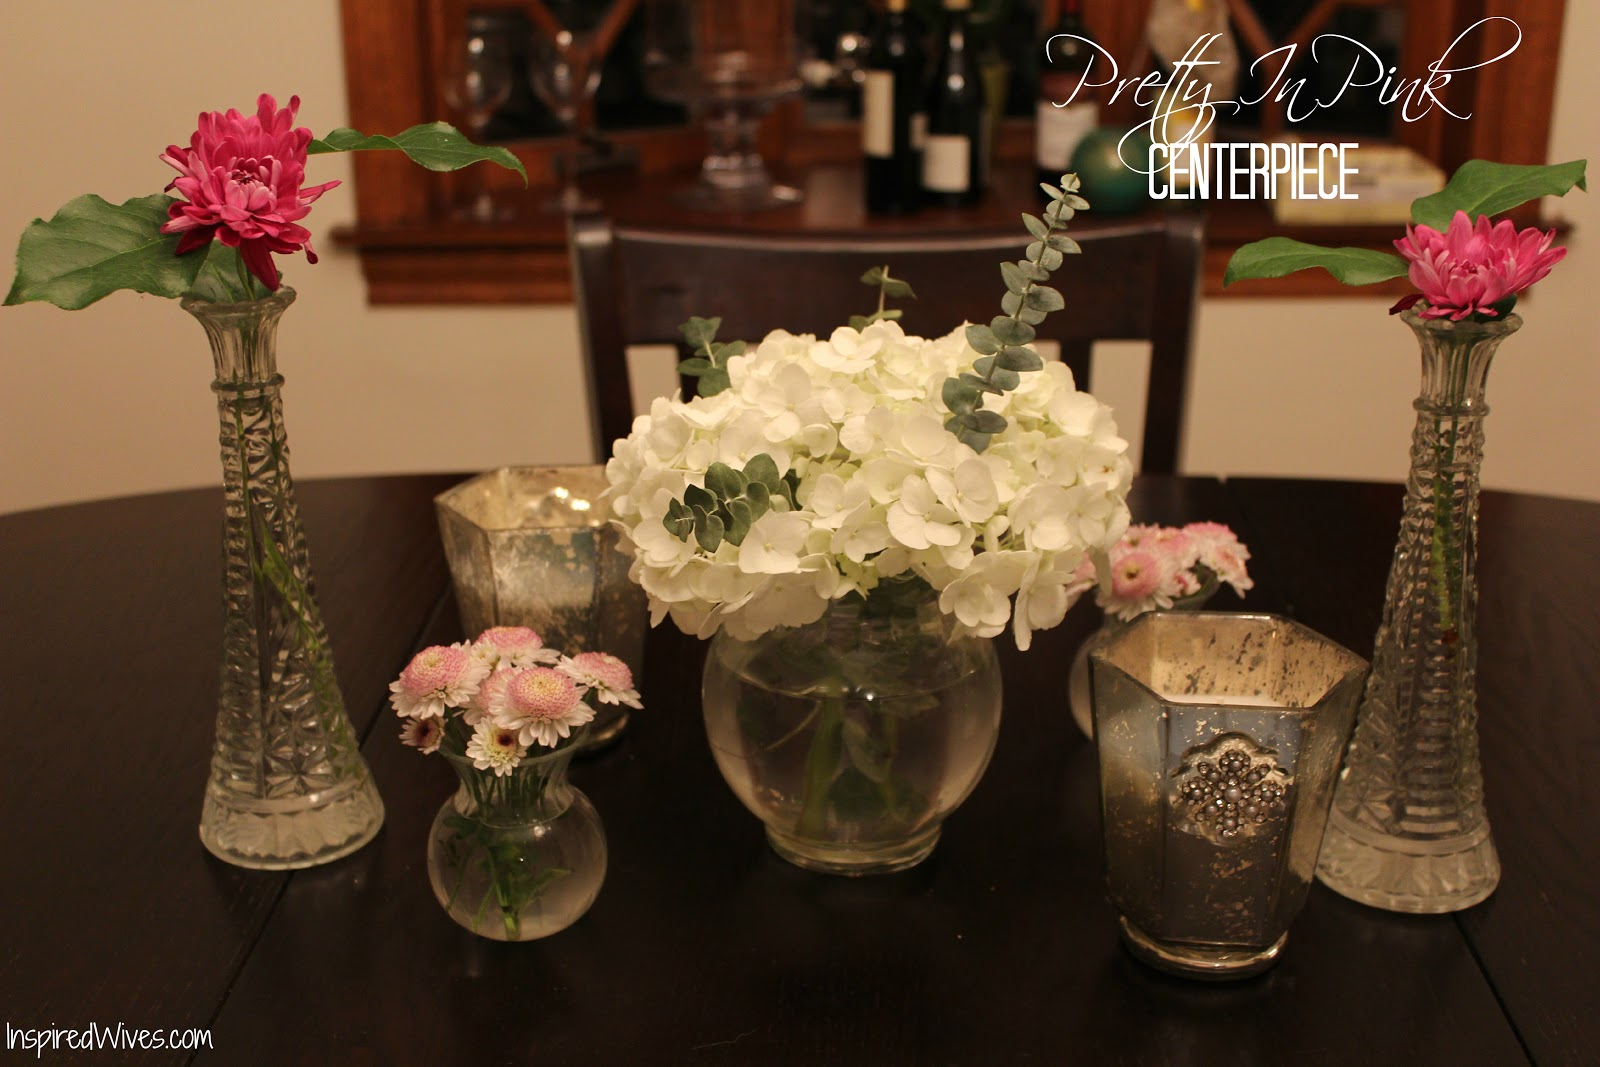 Inspired i dos dinner party centerpiece ideas